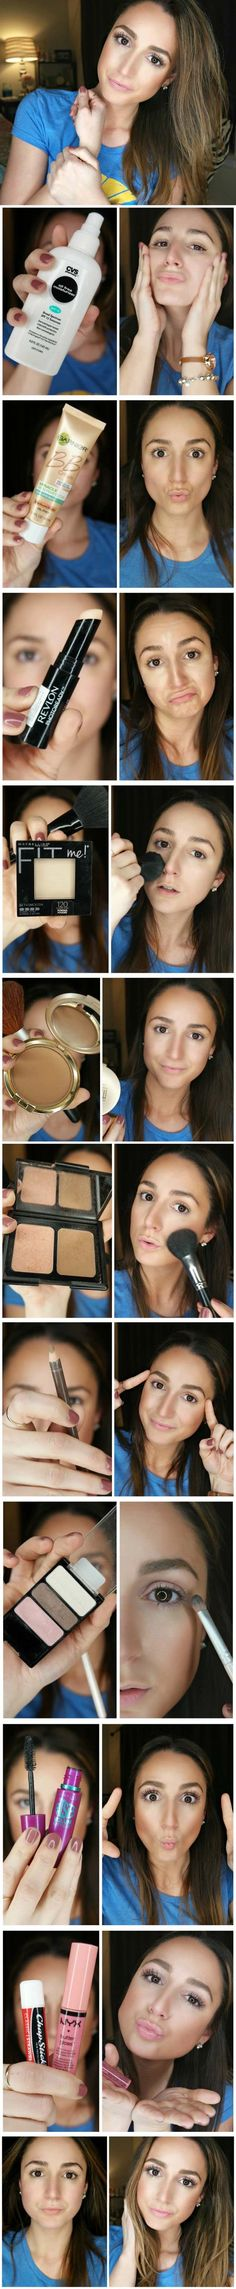 Natural Makeup Best Makeup Tutorials for Teens -5 Minute Everyday Makeup Routine - Easy Makeup Ideas for Beginners - Step by Step Tutorials for Foundation, Eye Shadow, Lipstick, Cheeks, Contour, Eyebrows and Eyes - Awesome Makeup Hacks and Tips for Simple DIY Beauty - Day and Evening Looks diyprojectsfortee... - You only need to know some tricks to achieve a perfect image in a short time.